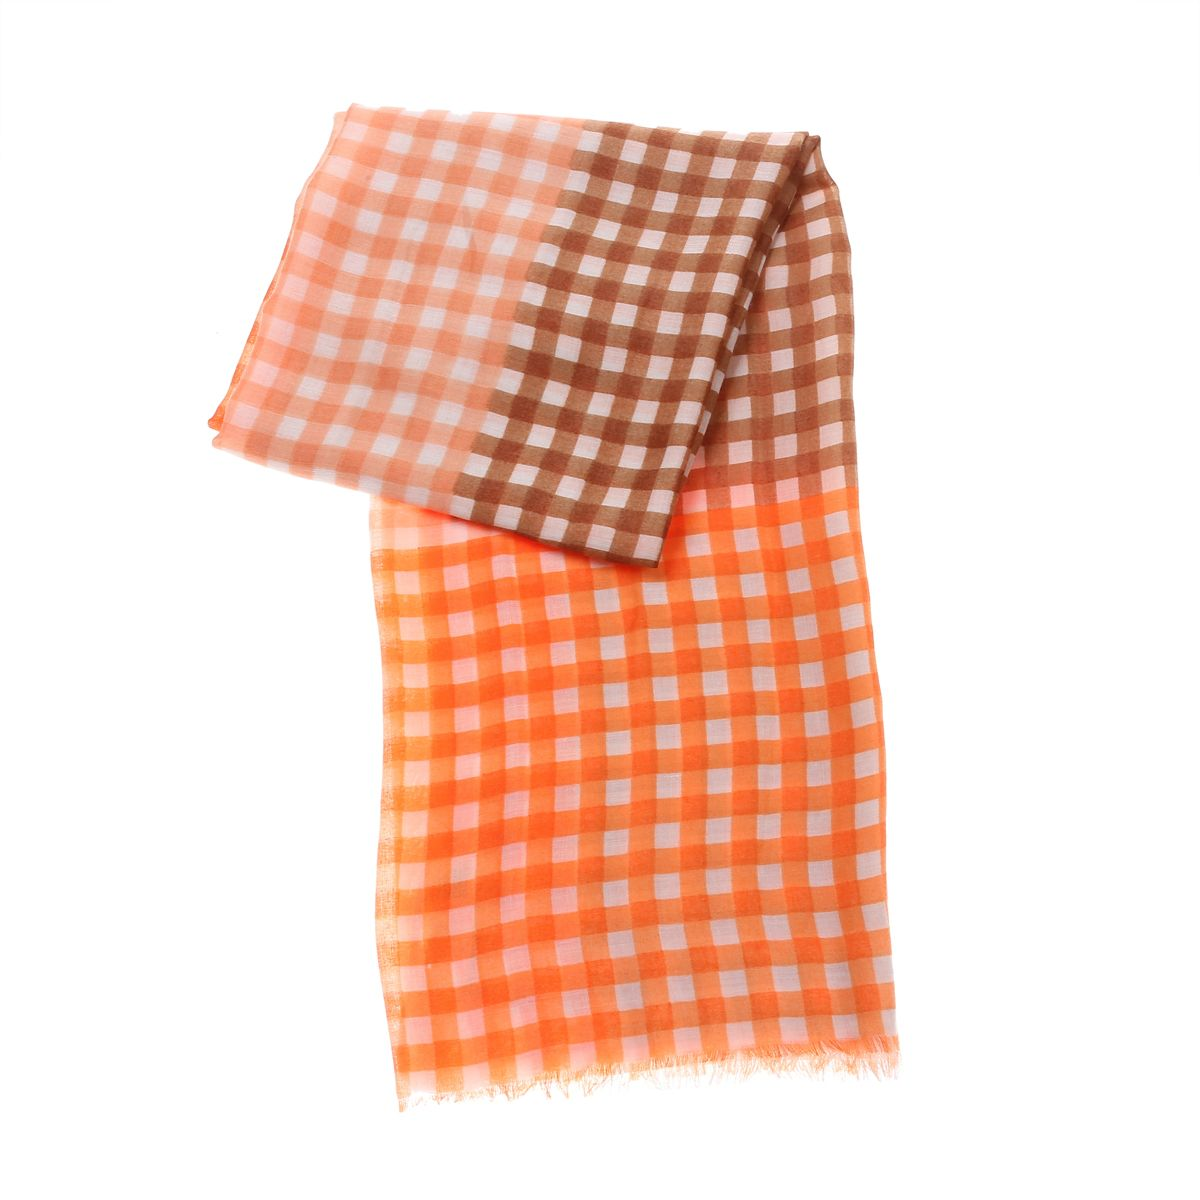 Foulard long à carreaux orange et marron